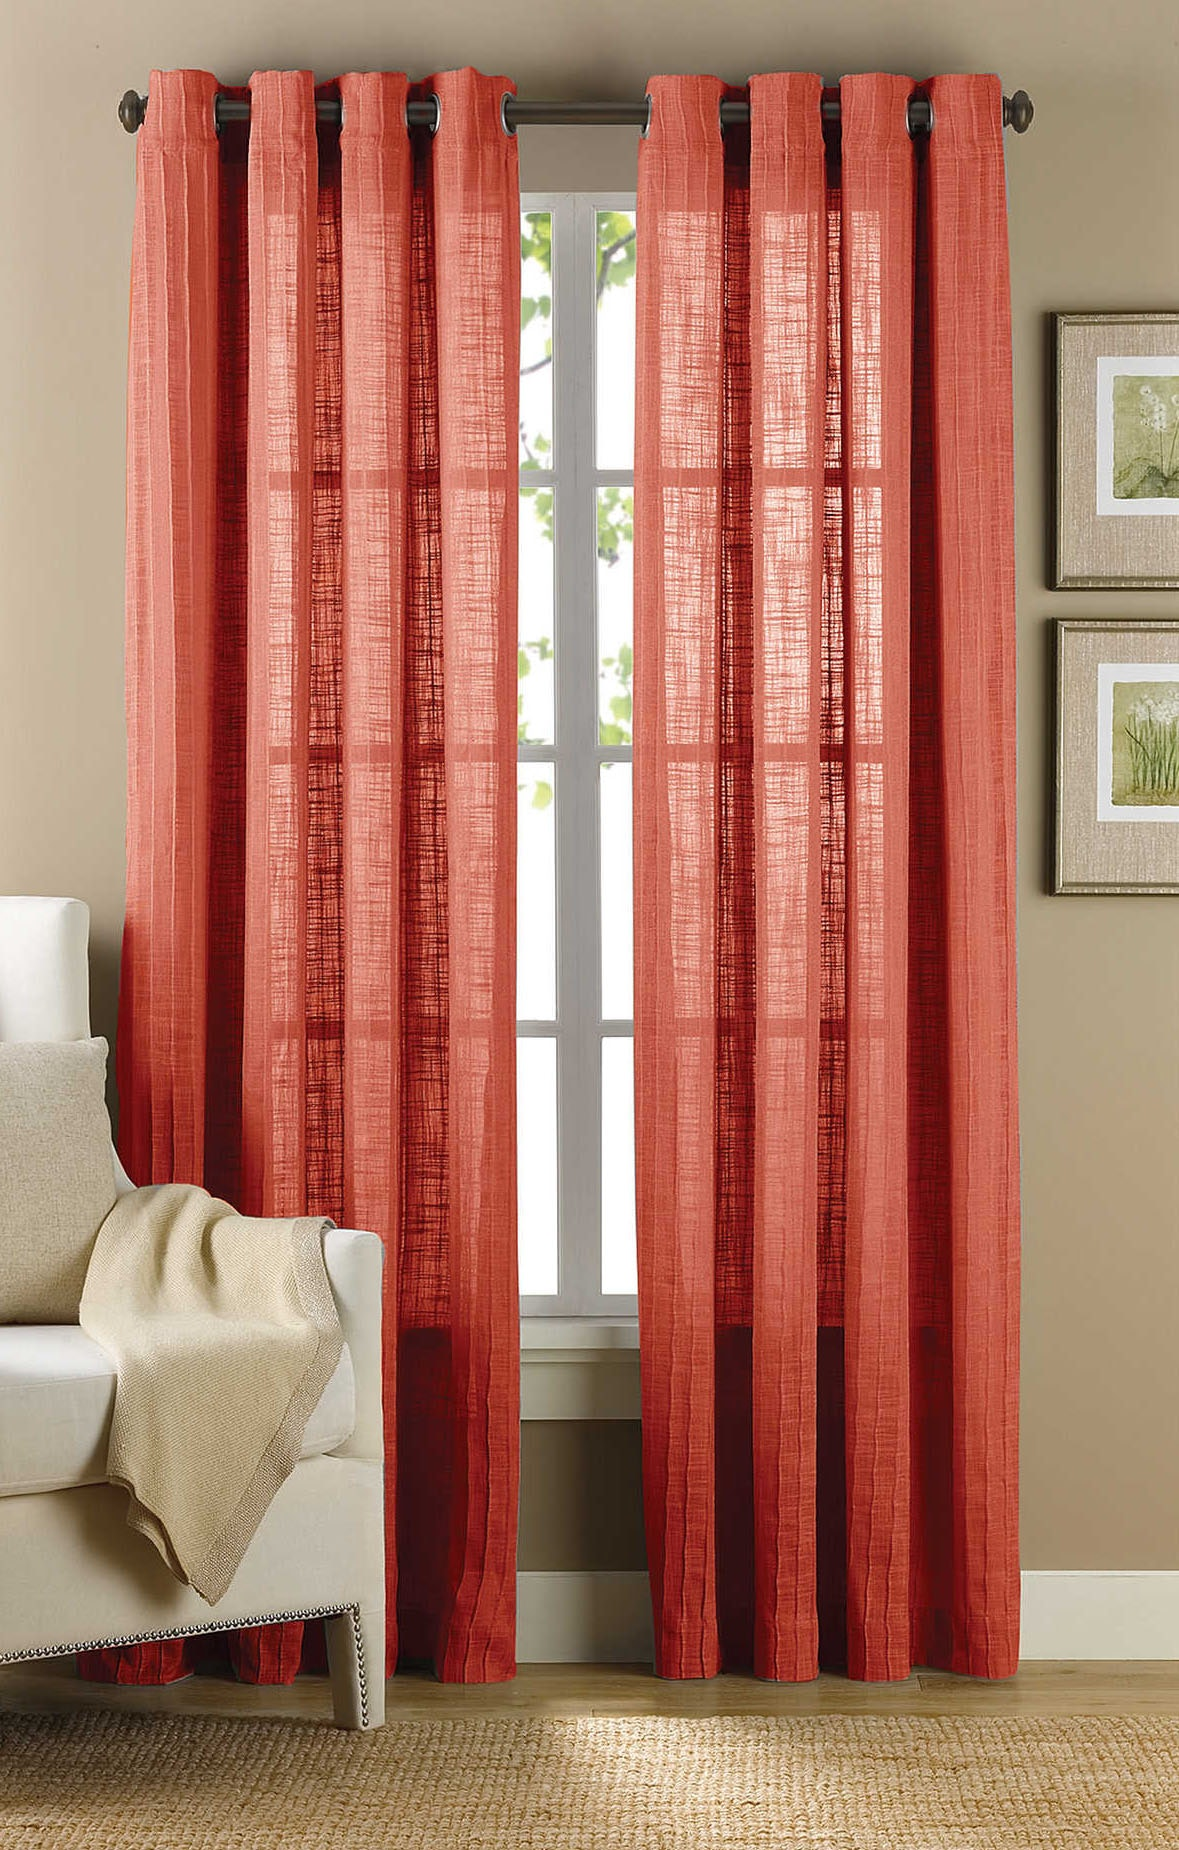 Curtains for blocking your nosey neighbors